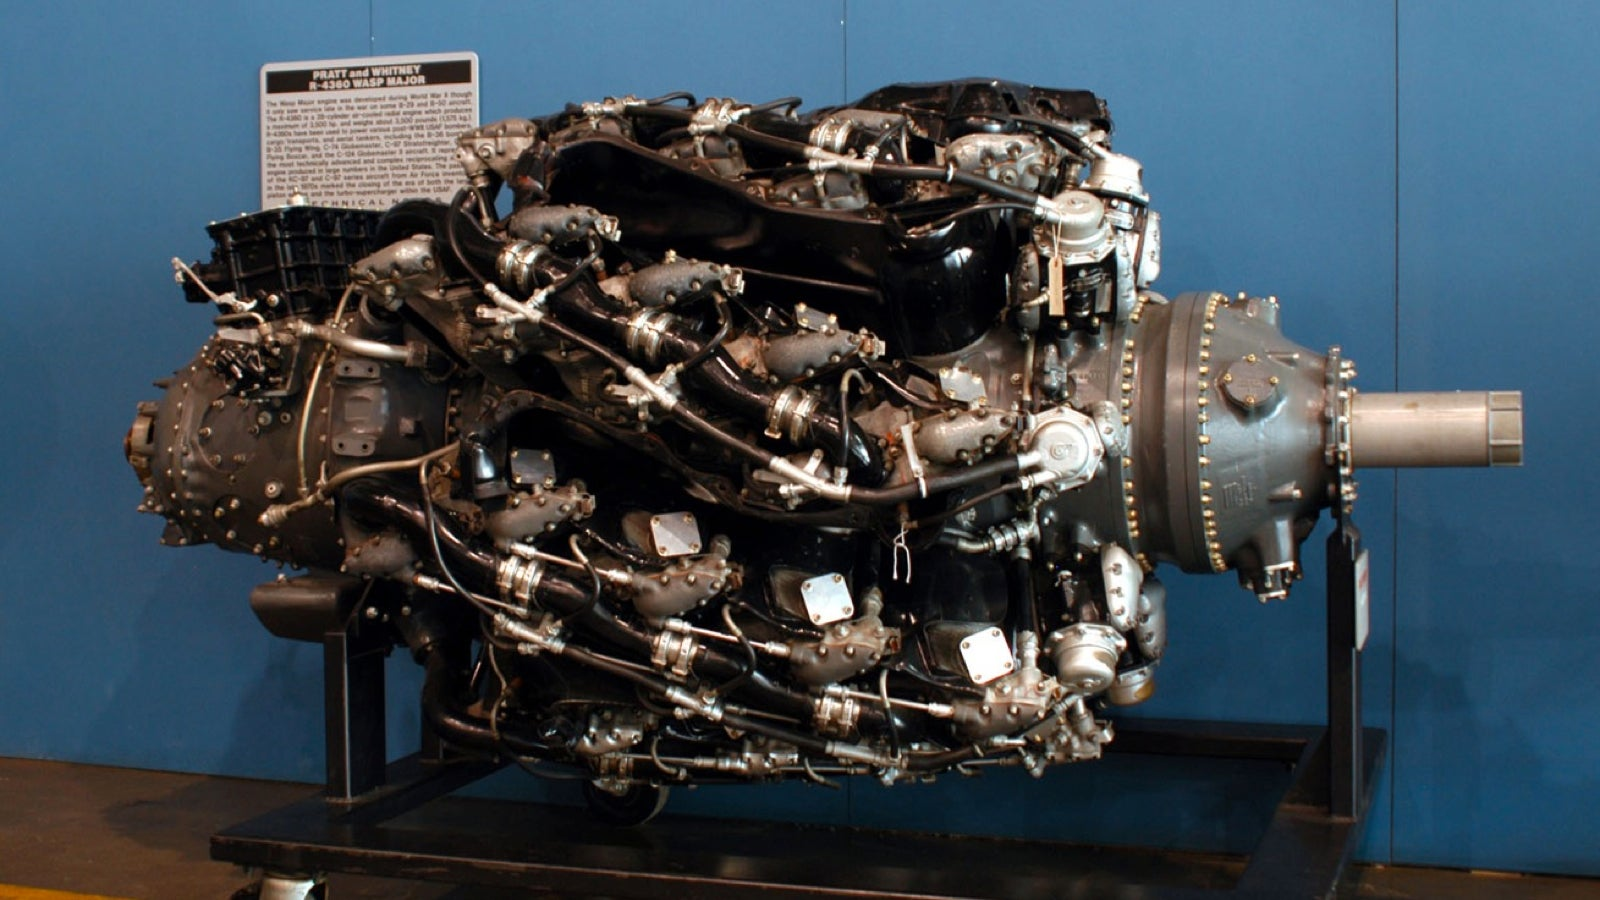 42 cylinder radial engine pictures to pin on pinterest pinsdaddy. Black Bedroom Furniture Sets. Home Design Ideas